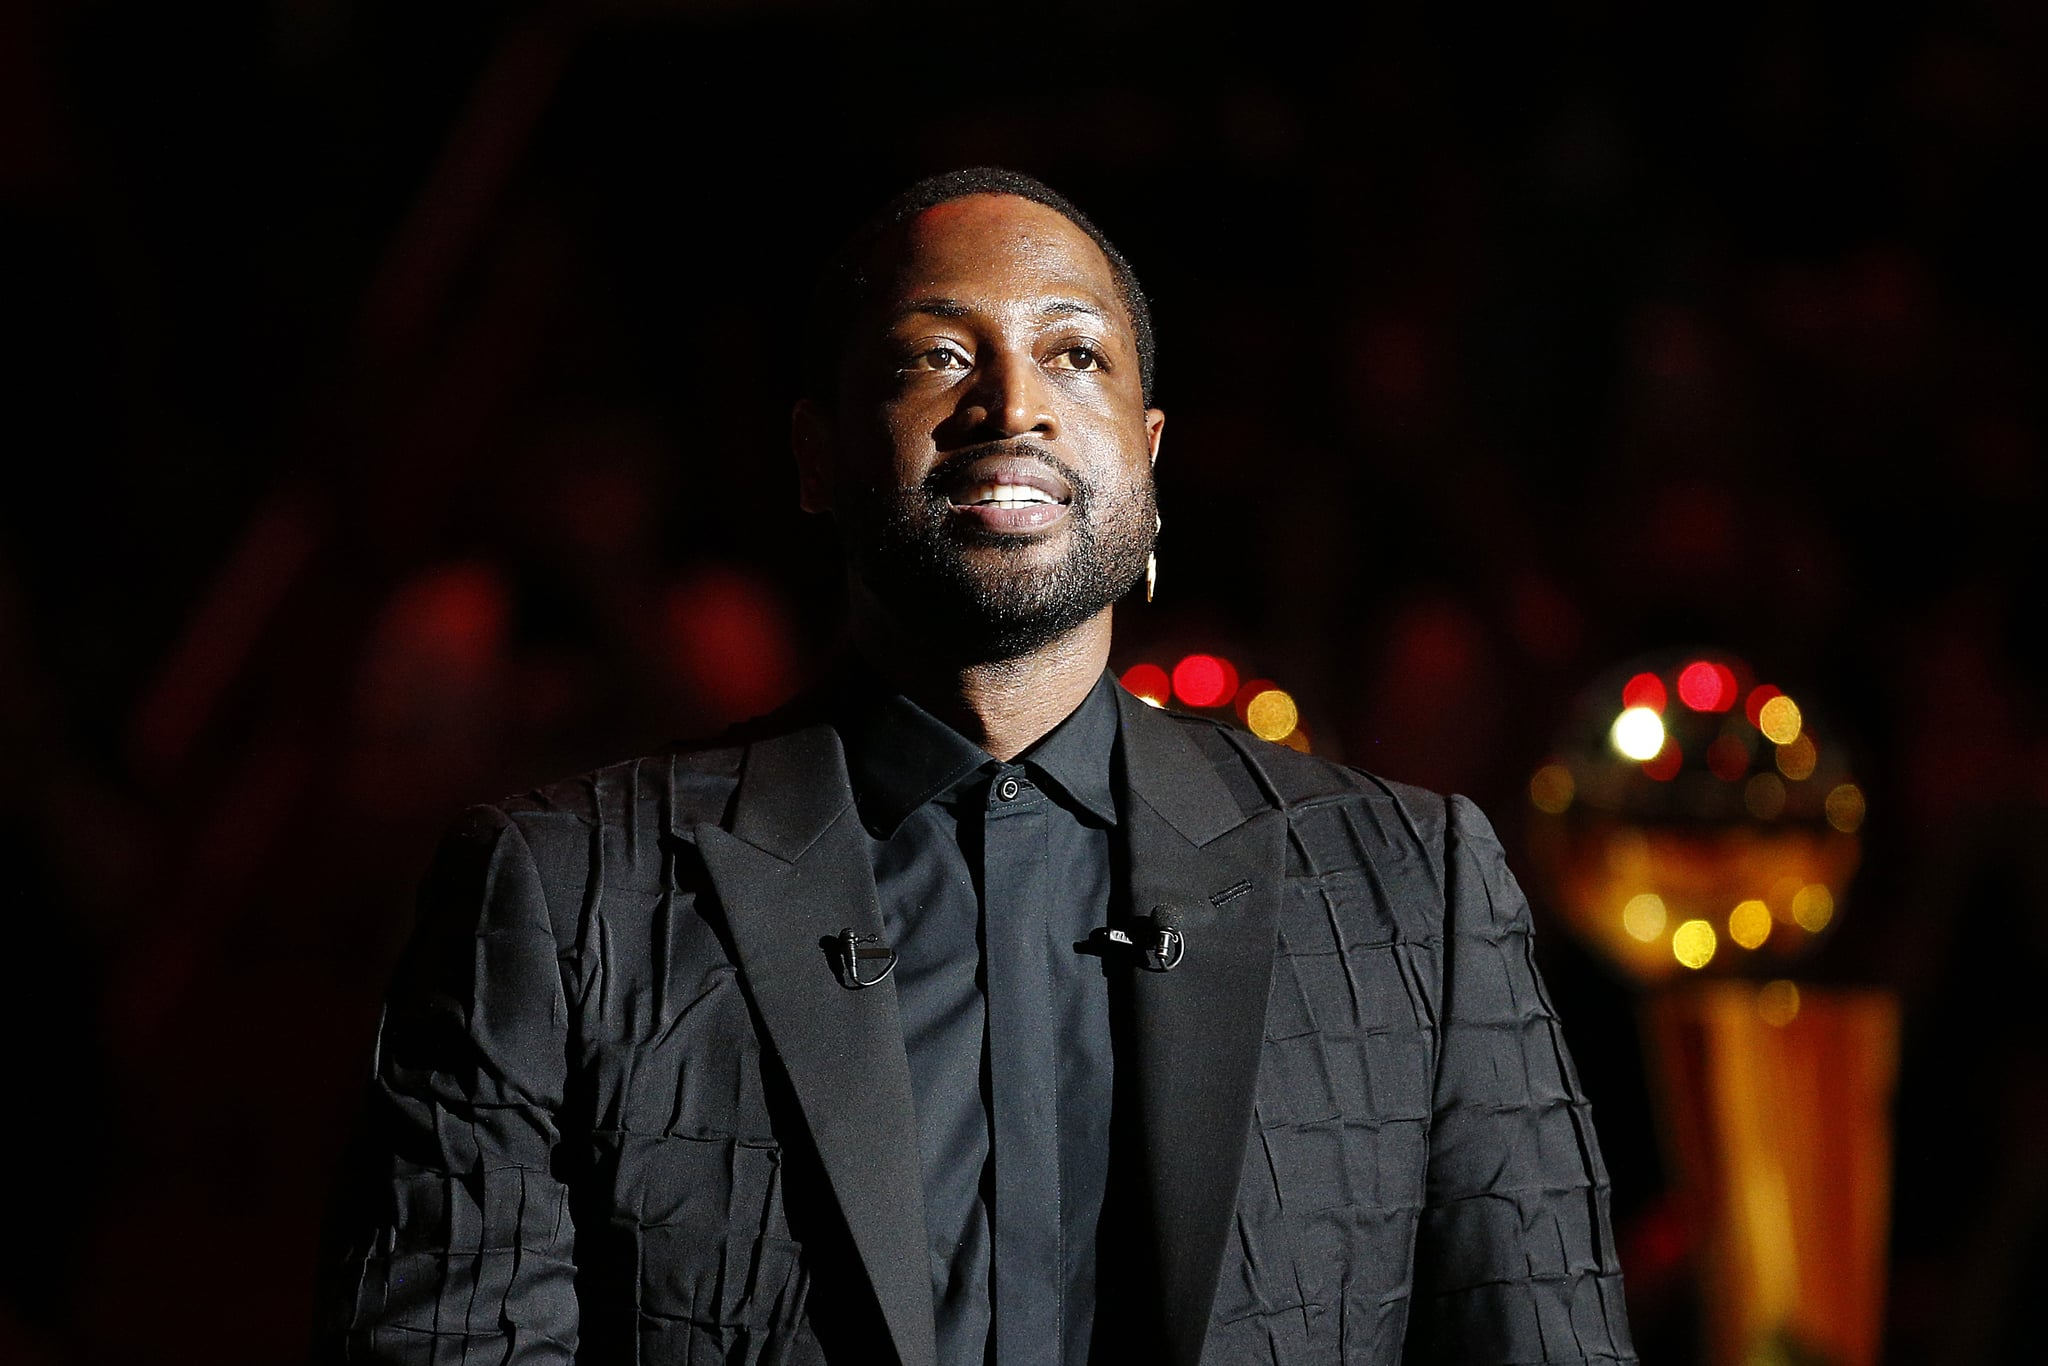 MIAMI, FLORIDA - FEBRUARY 22:  Former Miami Heat player Dwyane Wade addresses the crowd during his jersey retirement ceremony at American Airlines Arena on February 22, 2020 in Miami, Florida. NOTE TO USER: User expressly acknowledges and agrees that, by downloading and/or using this photograph, user is consenting to the terms and conditions of the Getty Images Licence Agreement.  (Photo by Michael Reaves/Getty Images)